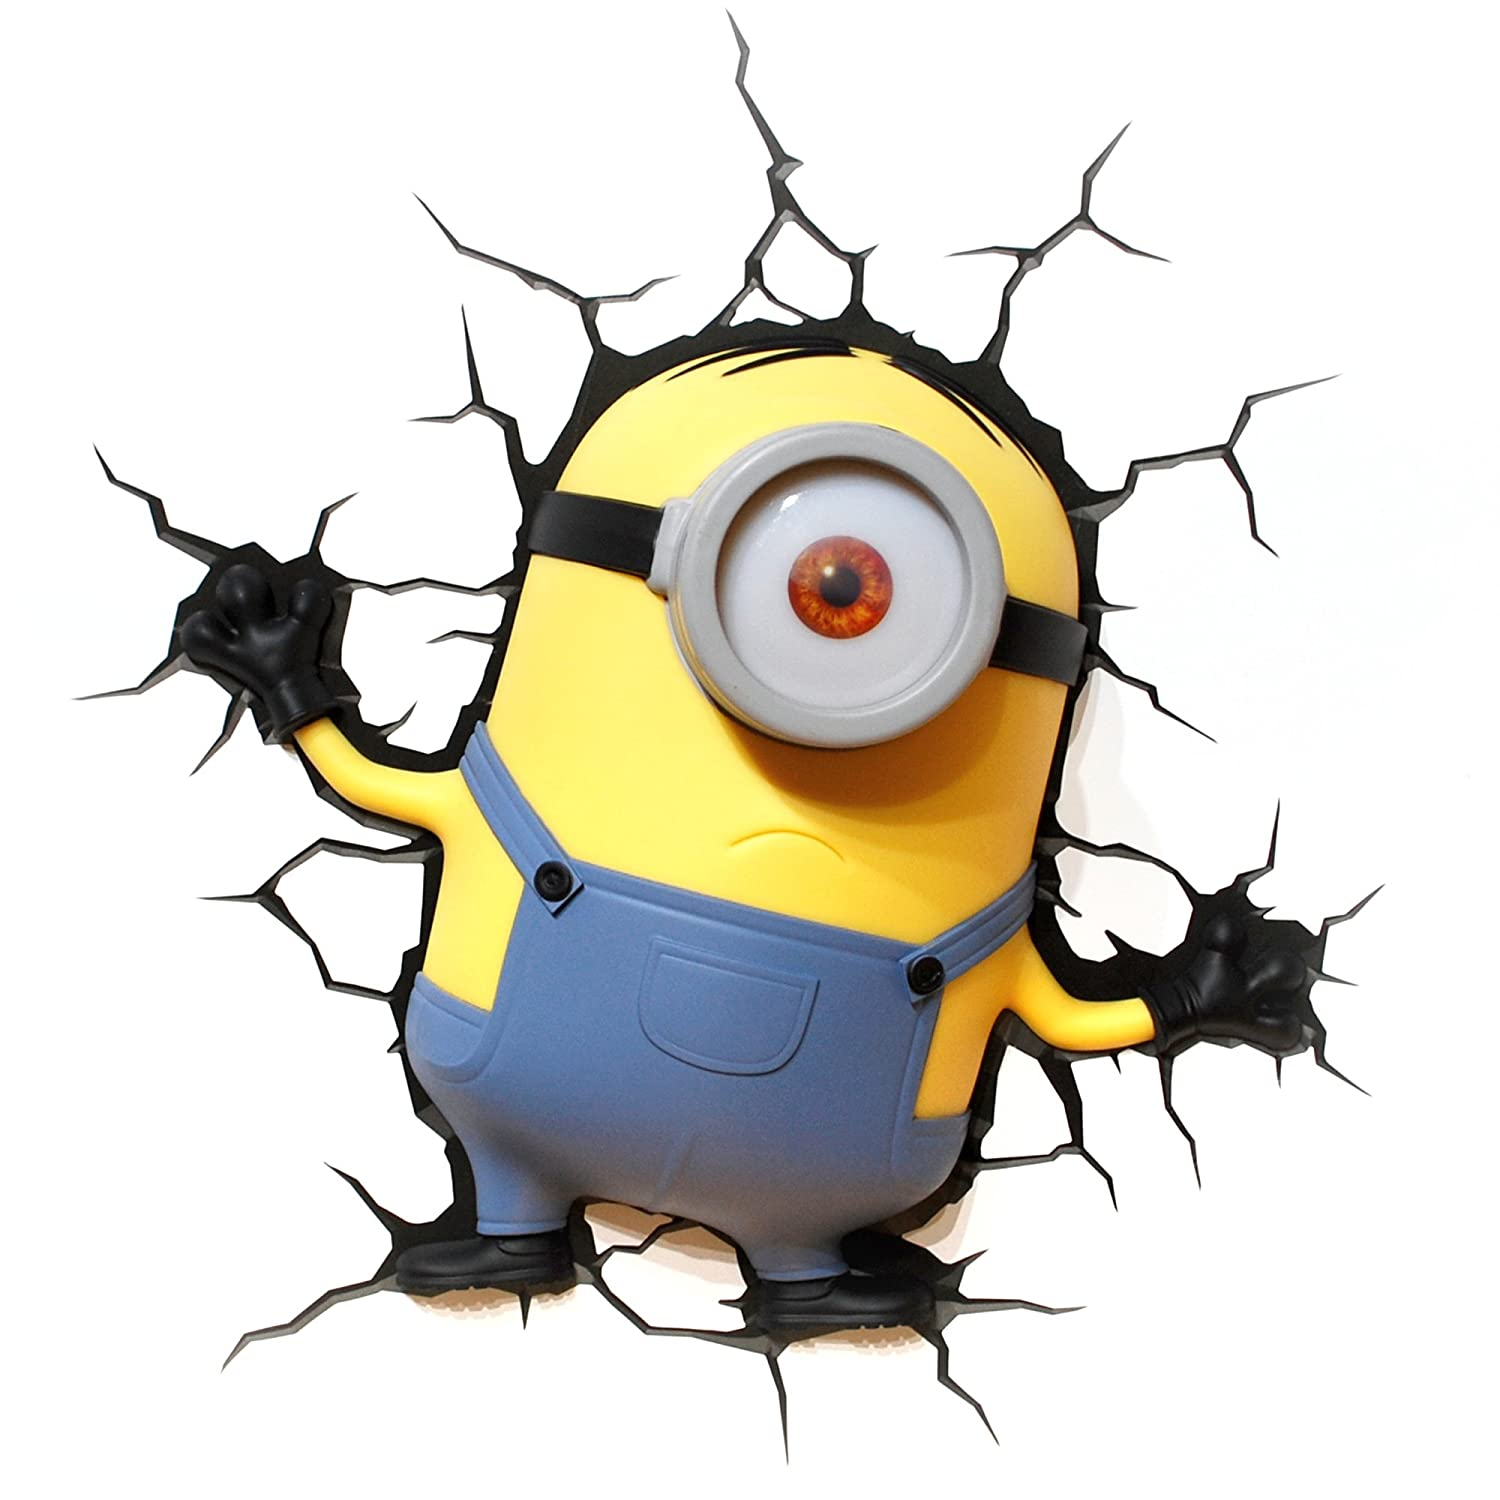 Amazon.com: 3DLightFX Minions Stuart 3D Deco Light: Toys & Games